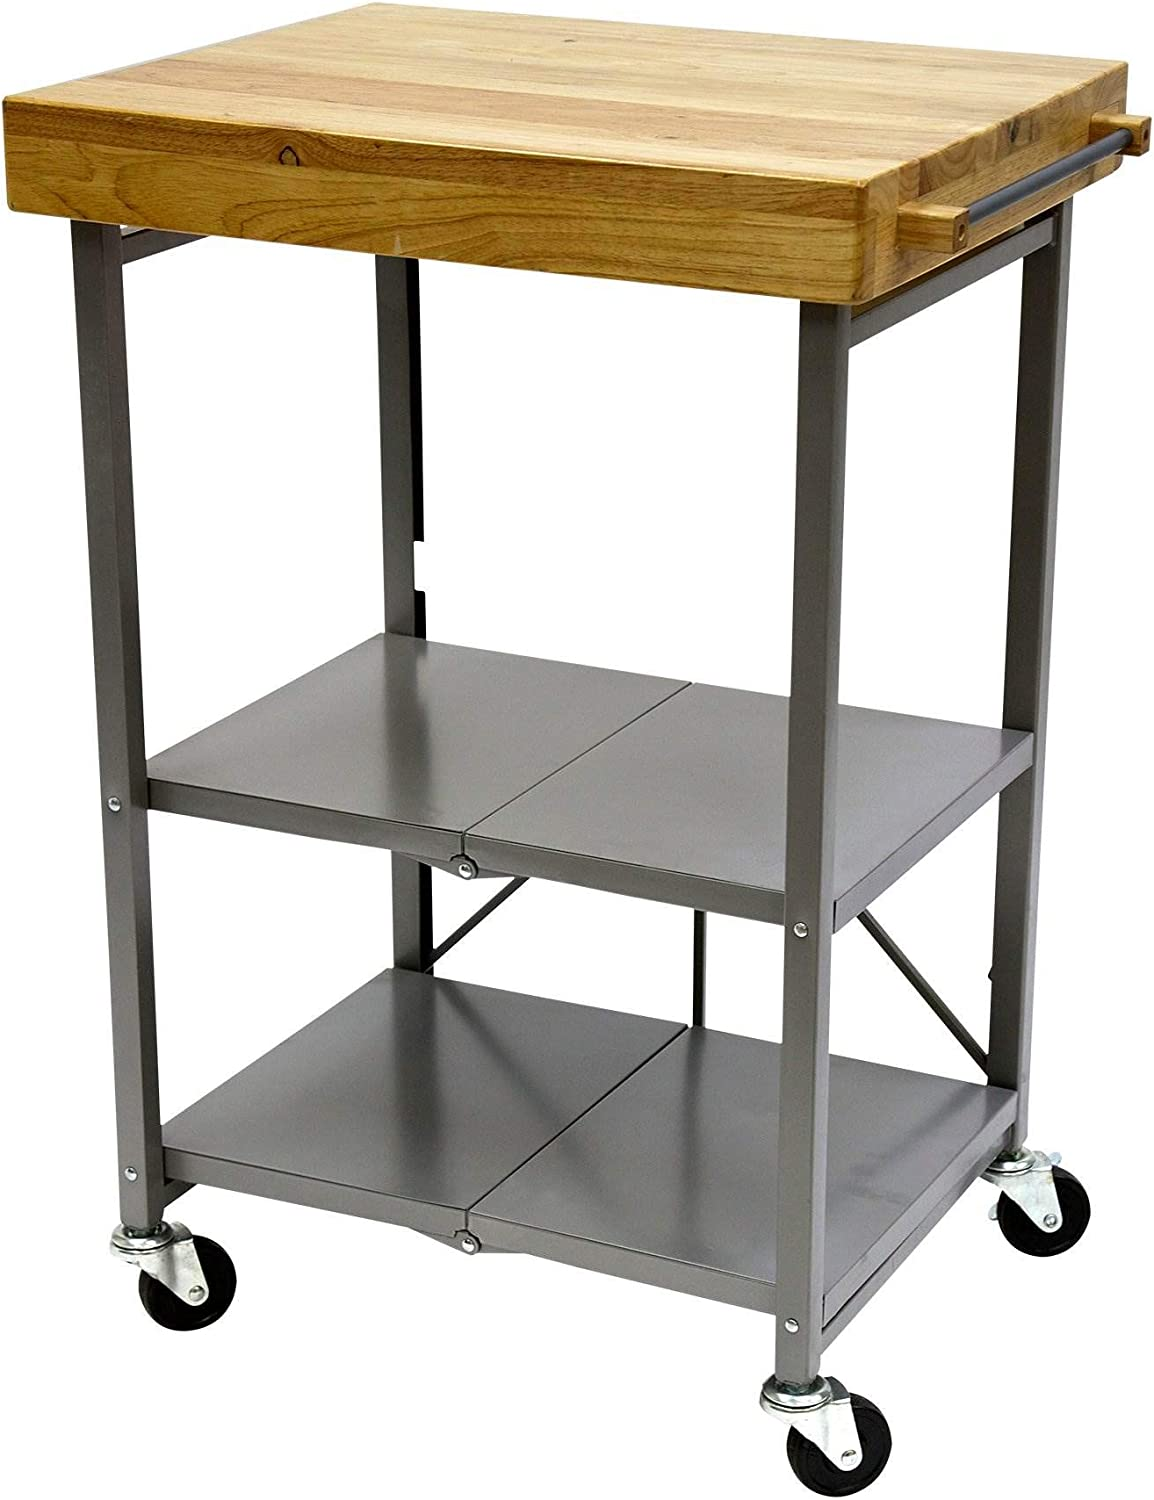 Origami Foldable Rolling Kitchen Island Cart, Food Serving Cart, 3-Tier  Storage Shelf with Wood Top, Microwave Stand, Heavy Duty, Silver